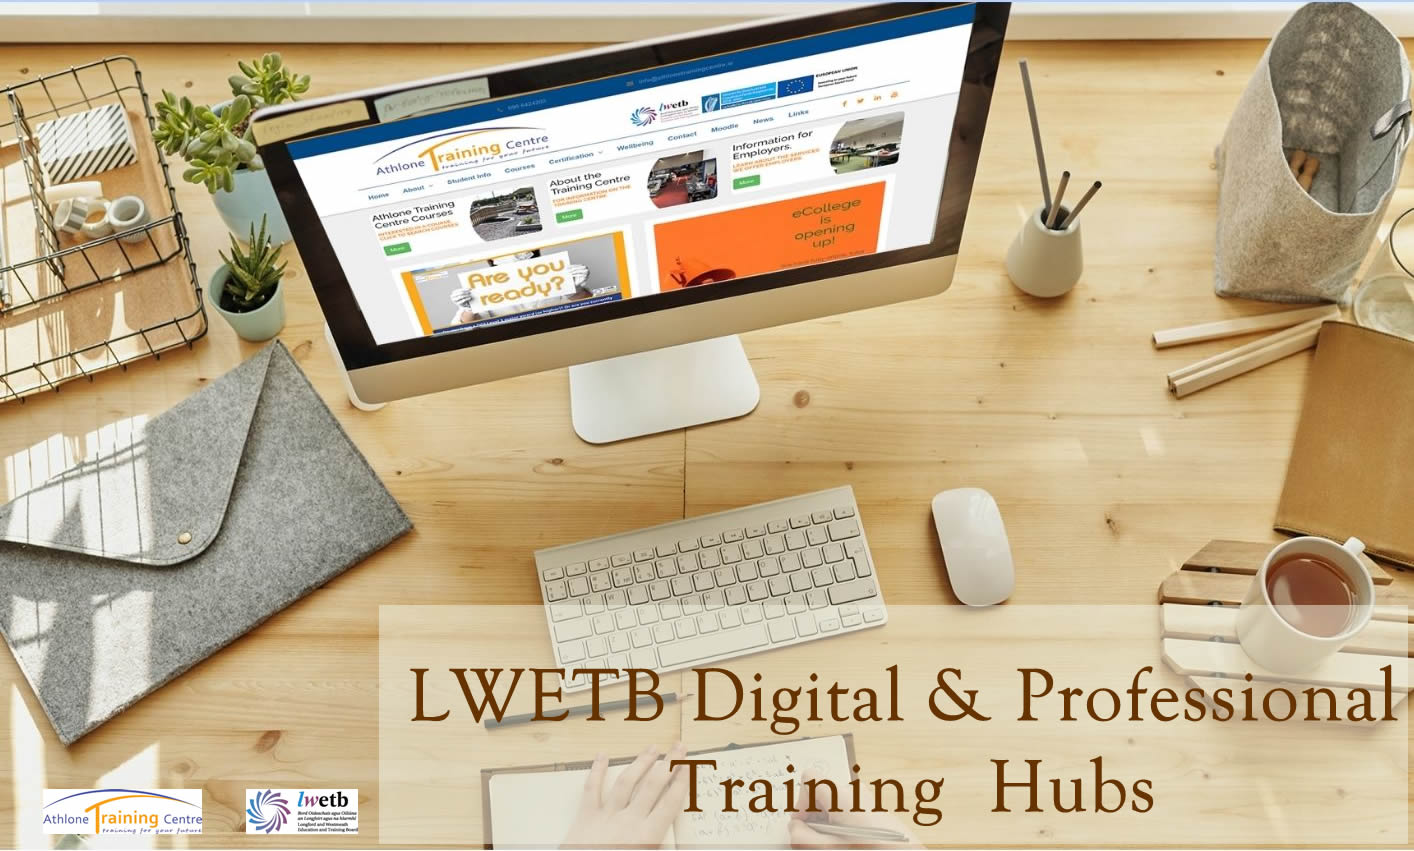 Digital Training Hubs